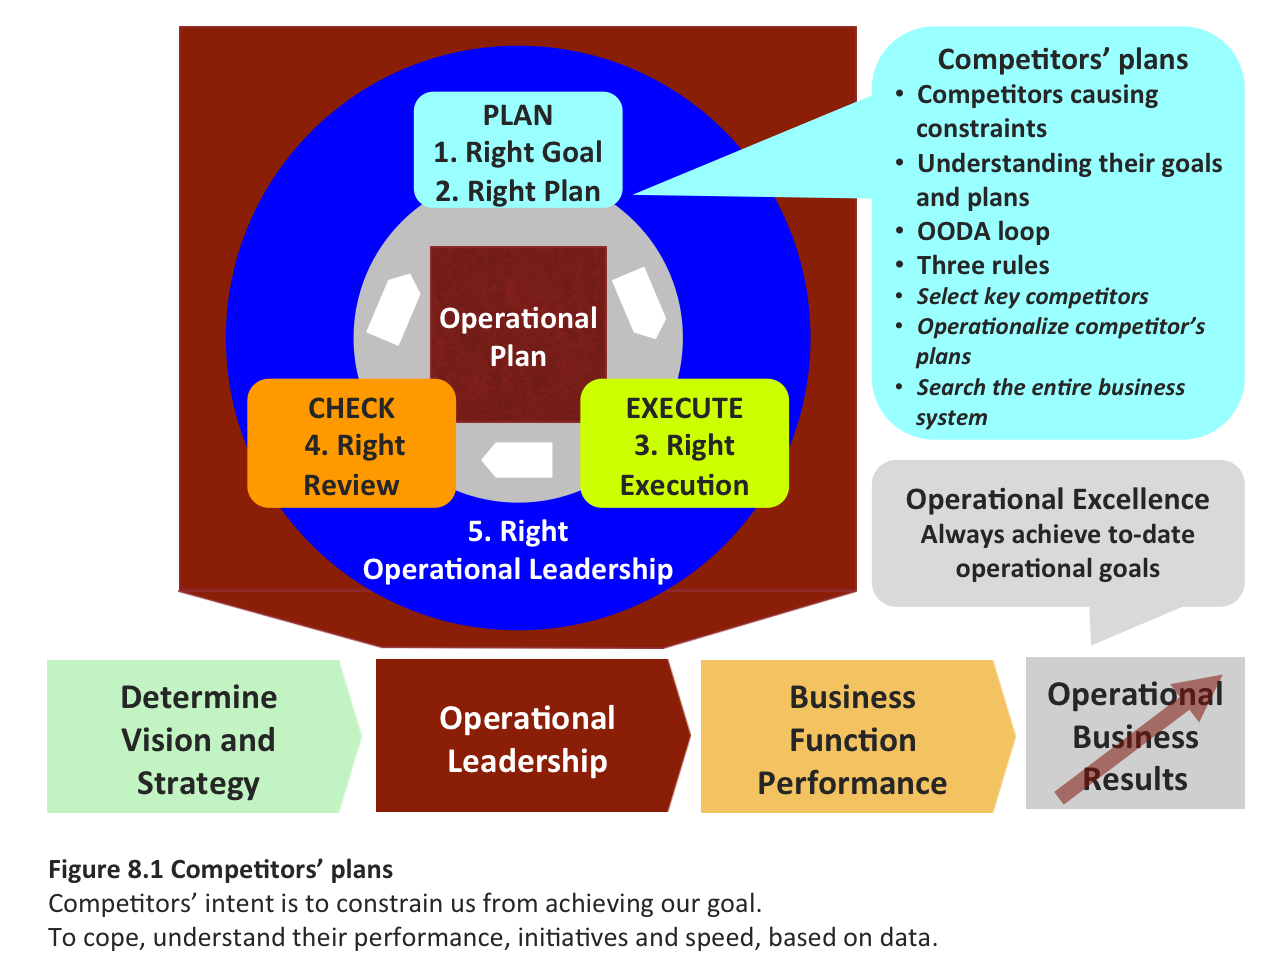 Benchmark competitiveness in operational plans